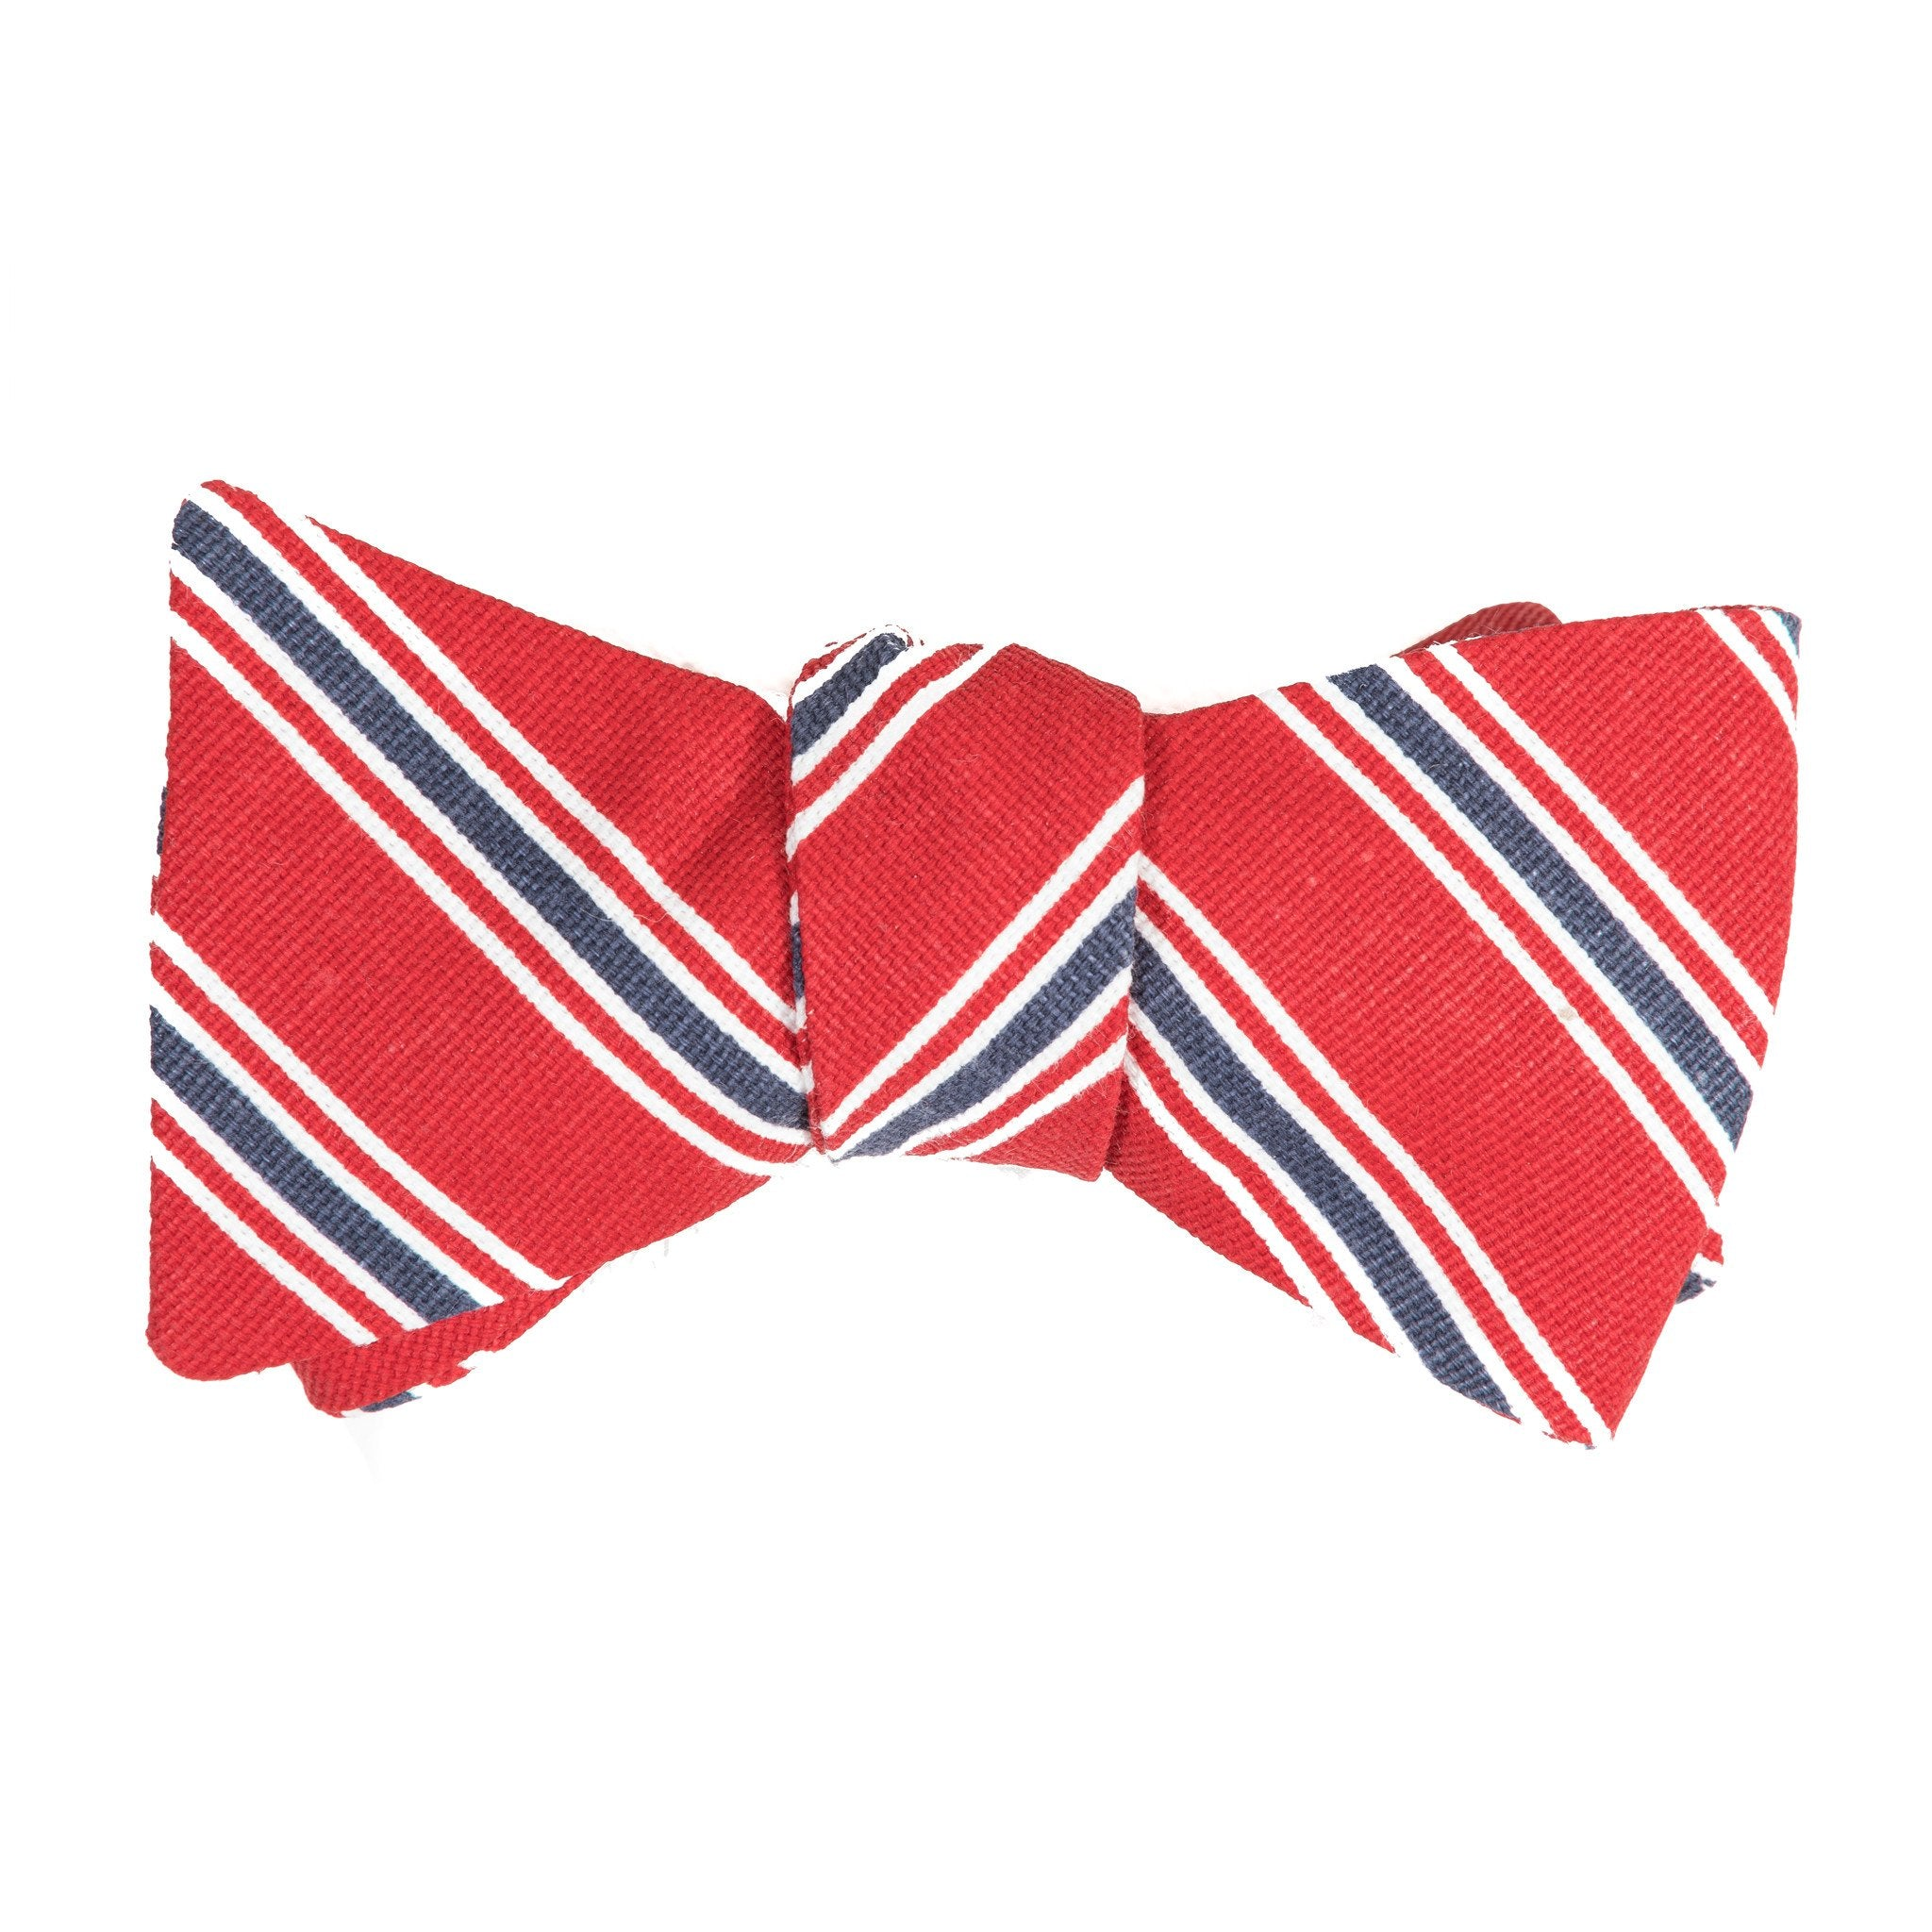 Mill City Fineries The Cambridge Bow Tie